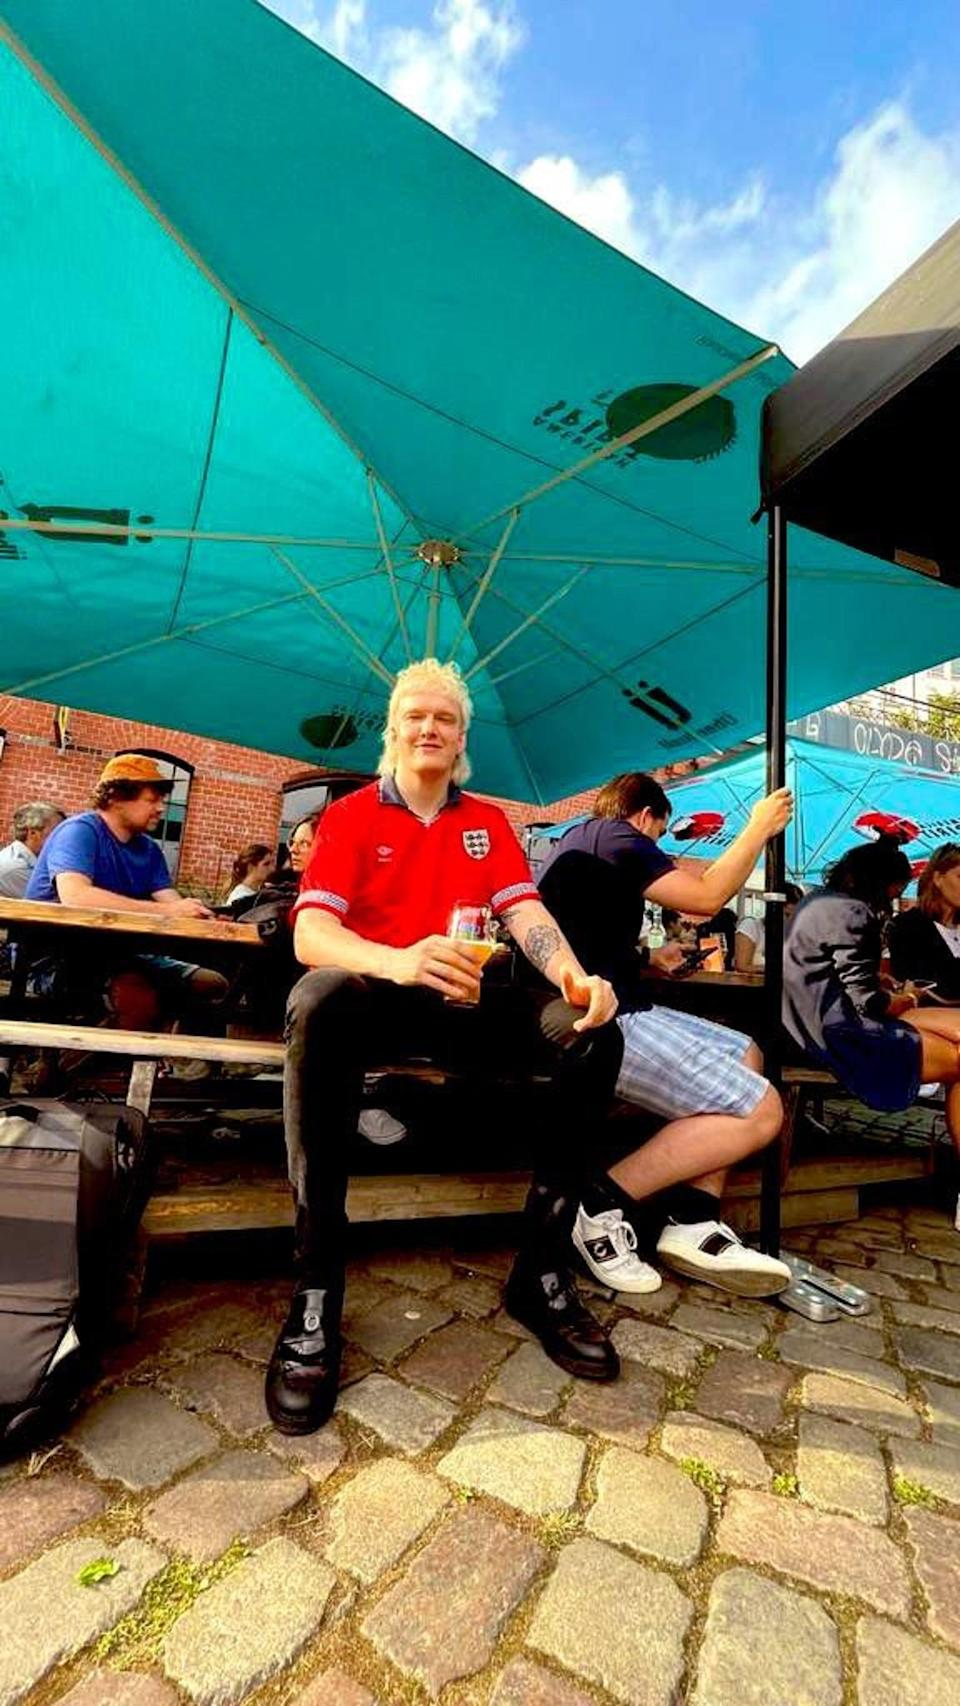 Joel Phillips watches the England v Germany game in a Hamburg pub